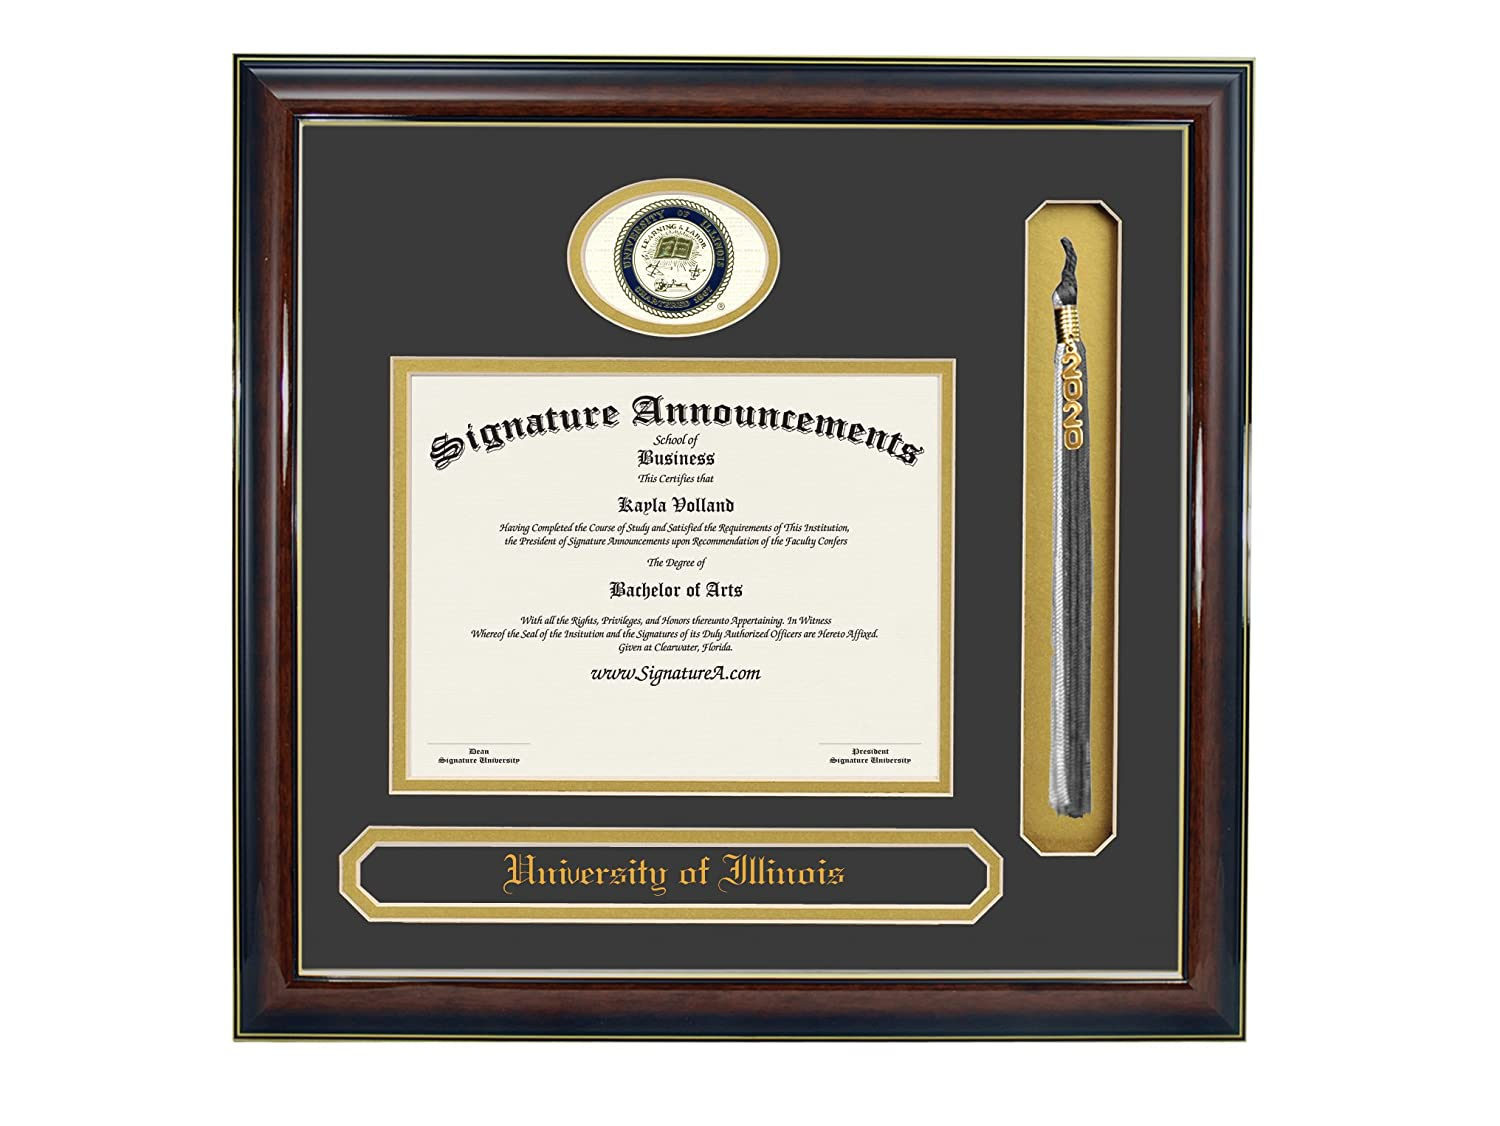 Signature Announcements Life-University Undergraduate Professional//Doctor Sculpted Foil Seal Graduation Diploma Frame 16 x 16 Gold Accent Gloss Mahogany